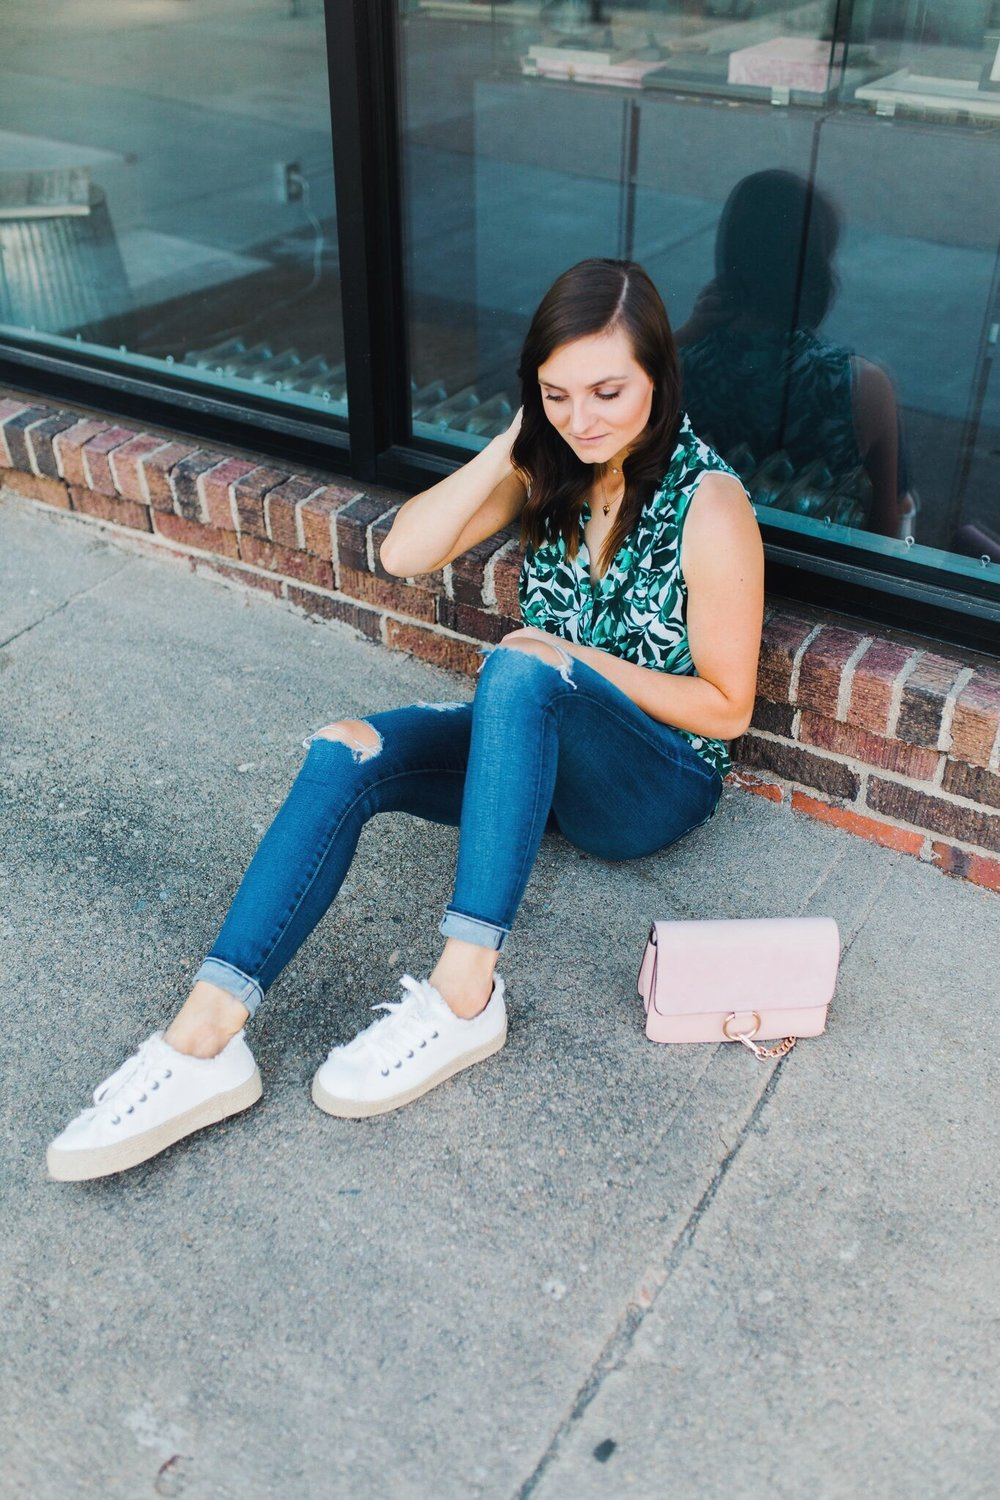 "<img src =five-summer-pieces-to-have-in-your-closet.jpg"" alt =""fashion-blogger-sitting-on-the-ground-wearing-ag-adriano-goldschmied-11 year-swapmeet-skinny-jeans- with-a bold-patterned-tank-and-platform-espadrille-sneakers-talking-summer-essentials-you-need-in-your-closet"">"